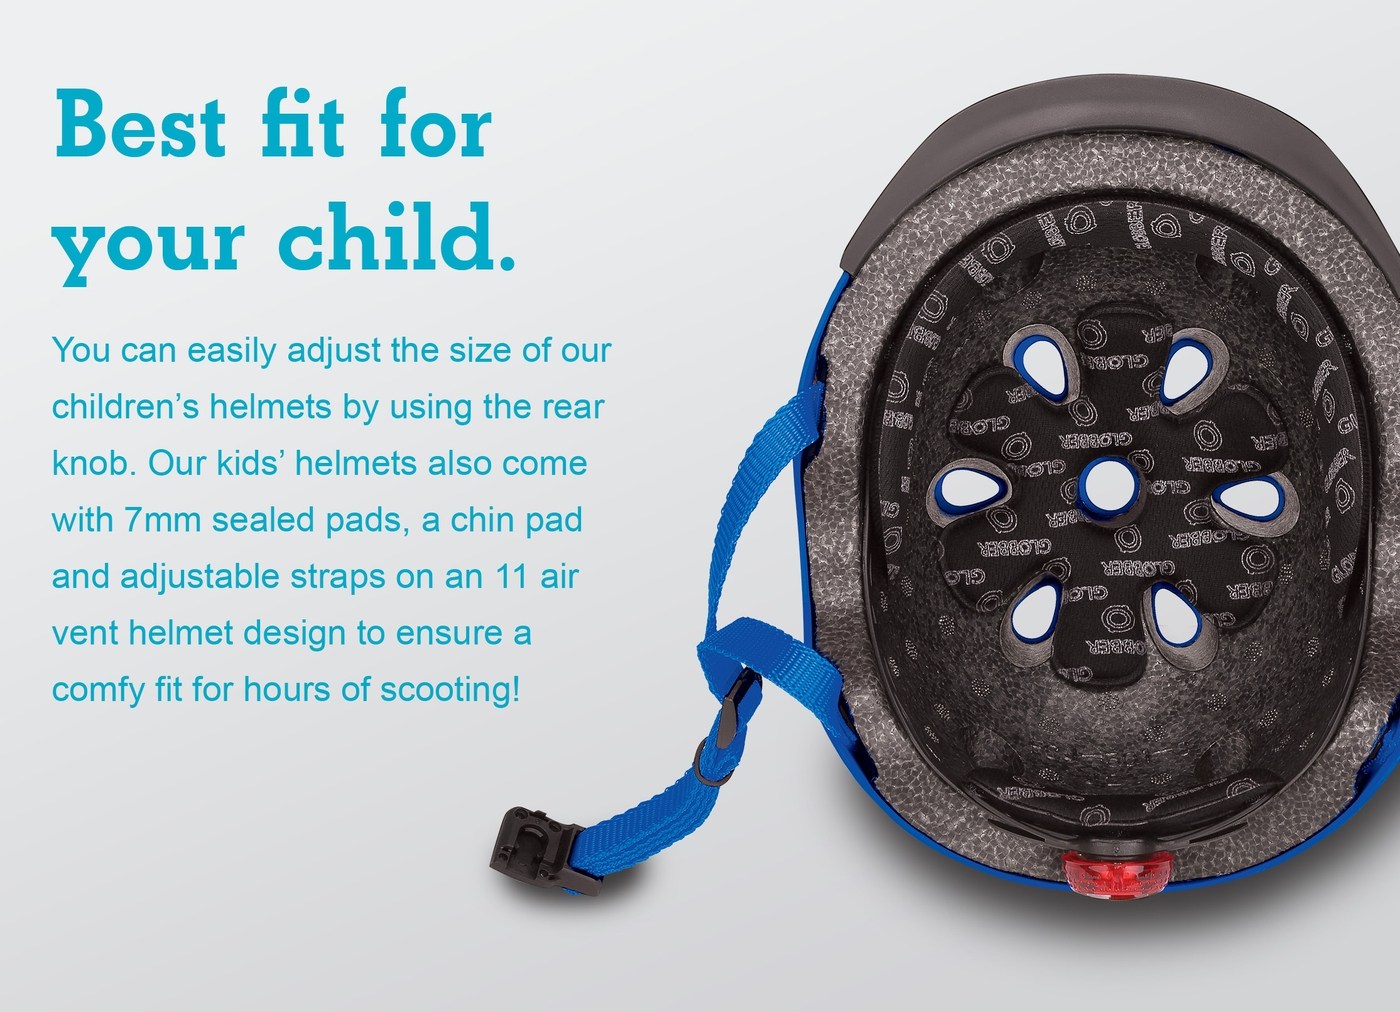 Best fit for your child.